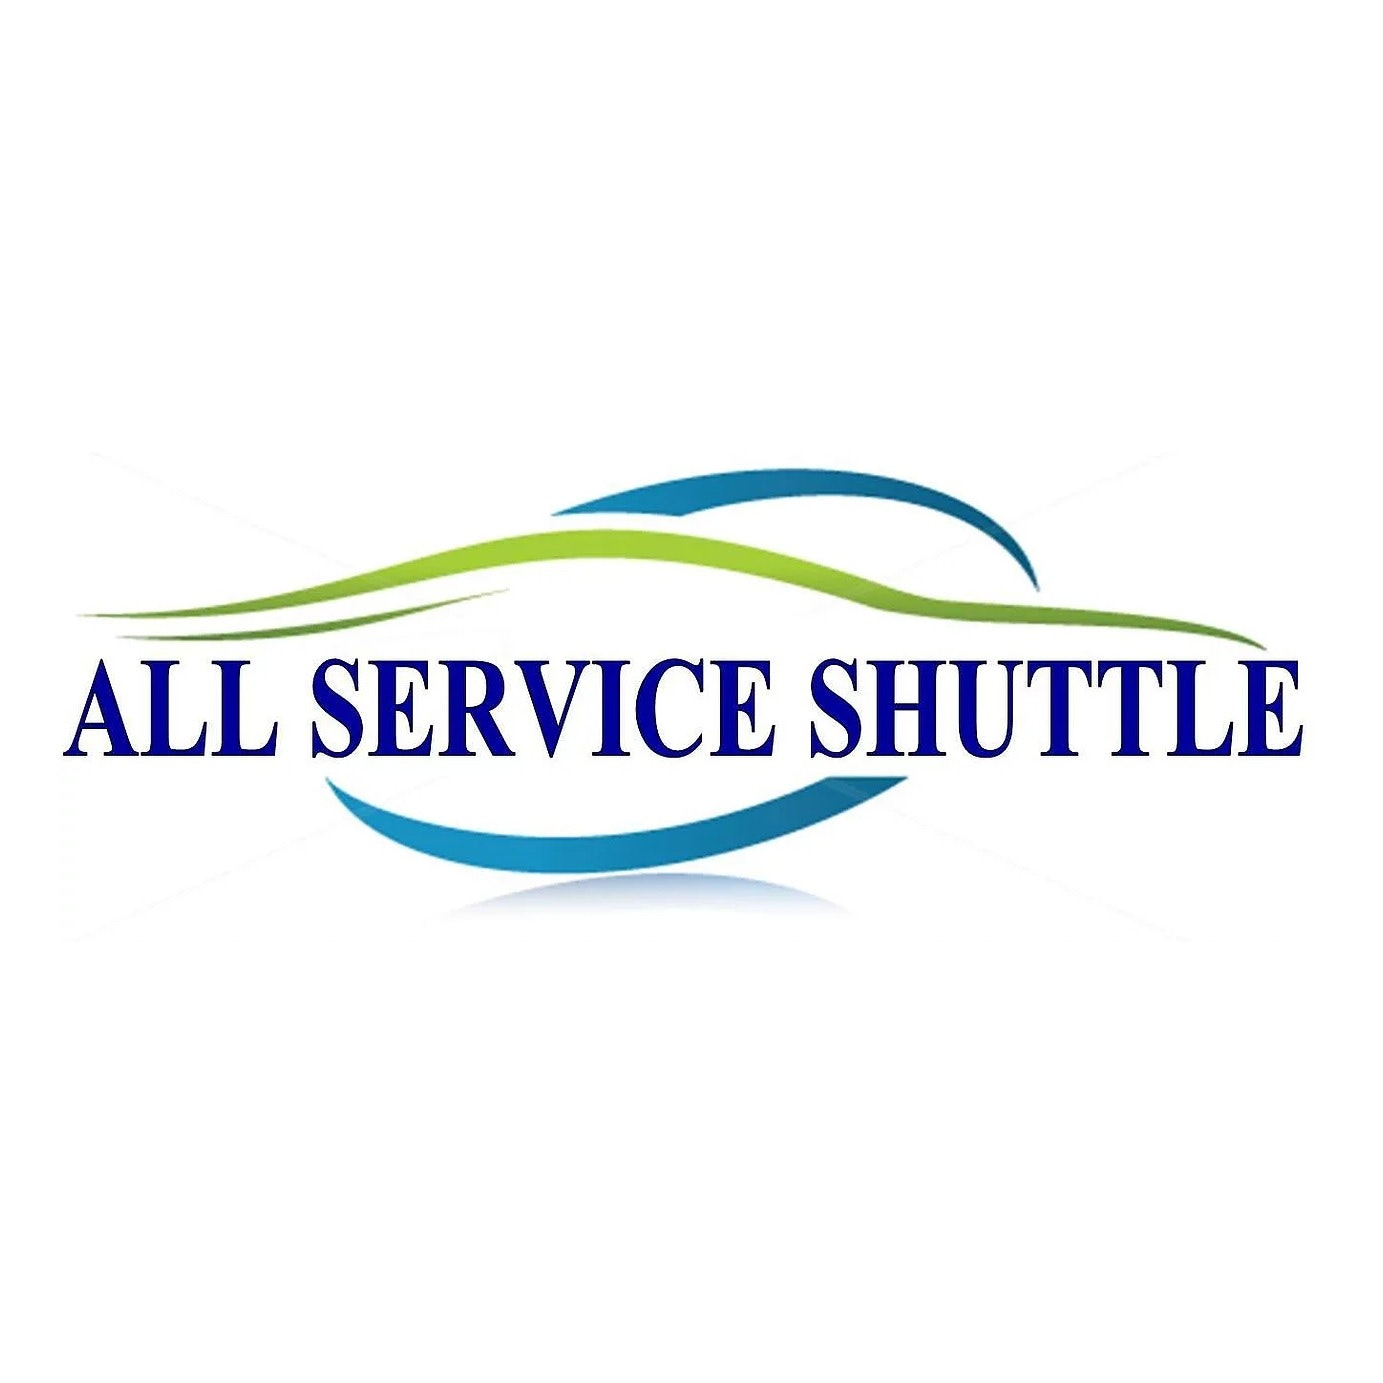 All Service Shuttle logo